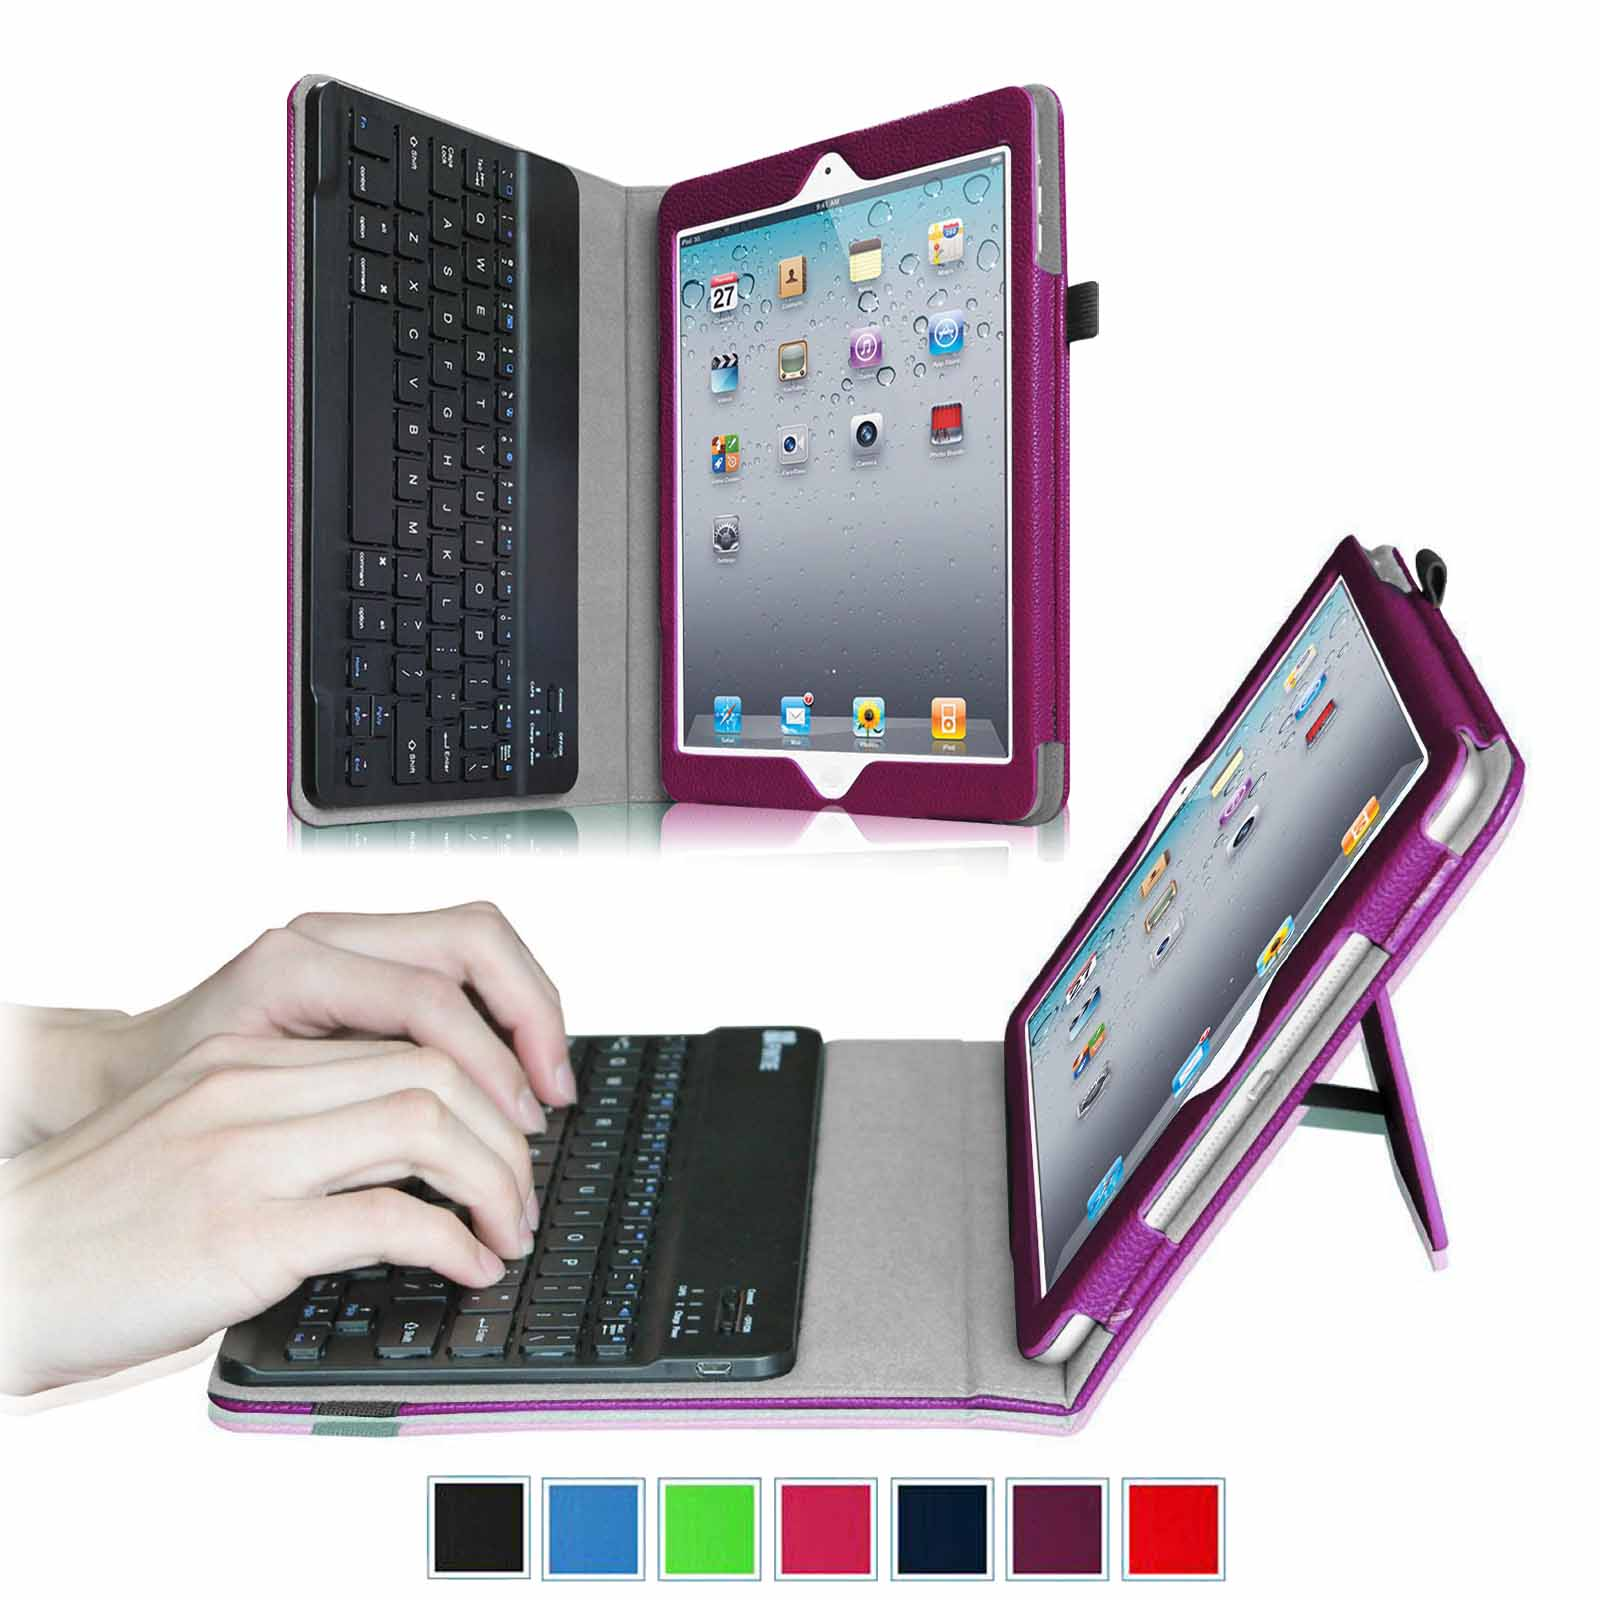 Apple iPad 4, iPad 3 & iPad 2 Keyboard Case - Fintie Ultra Thin Folio Case With Removable Bluetooth Keyboard, Purple